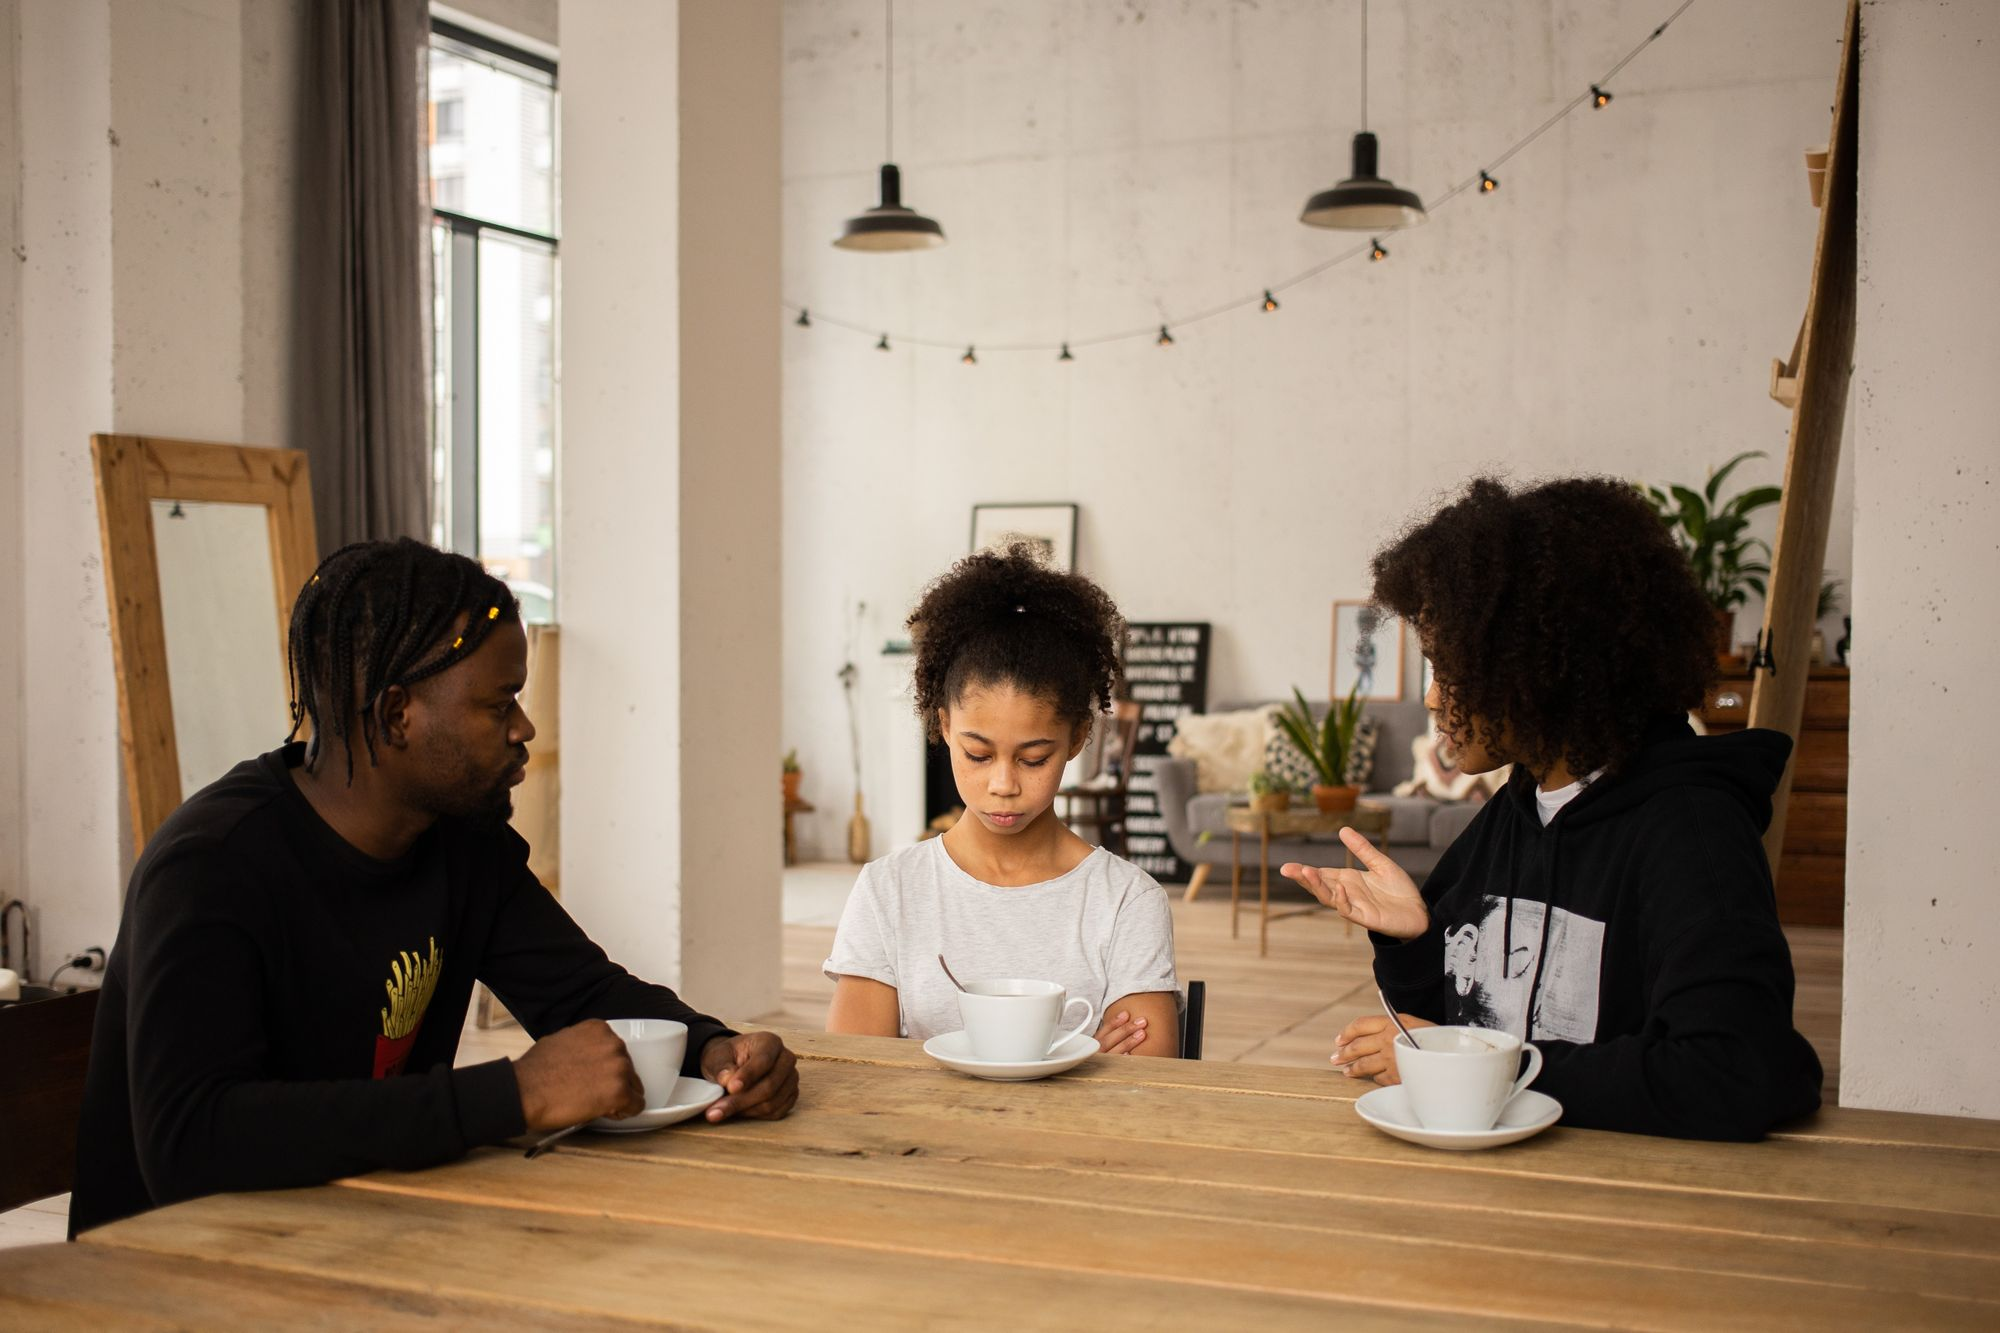 A Black man and Black woman instruct their Black daughter.